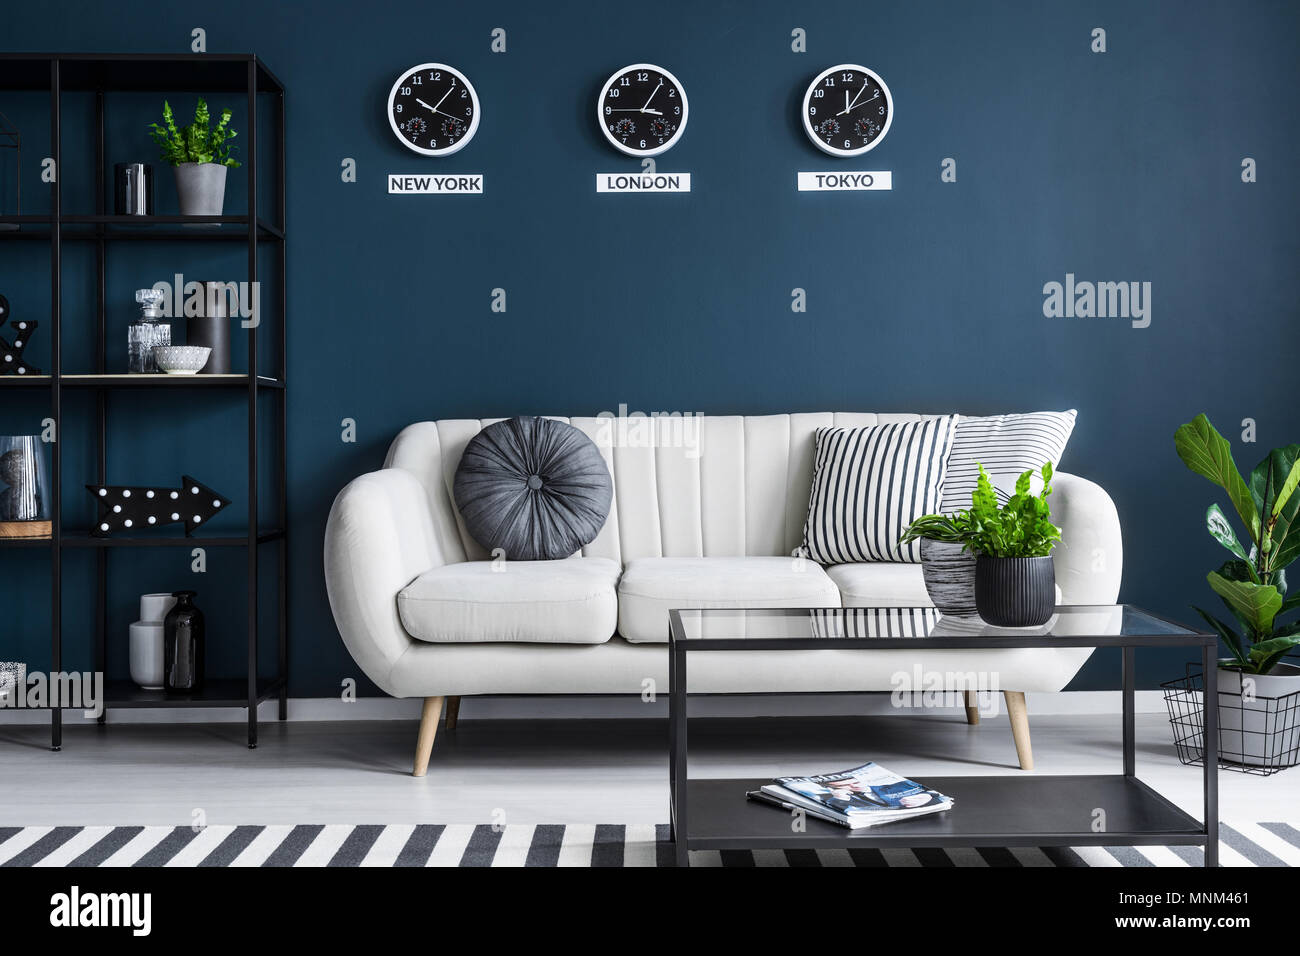 Elegant Beige Sofa In A Dark Navy Blue Living Room Interior With Black Furniture And Stylish Decor Stock Photo Alamy